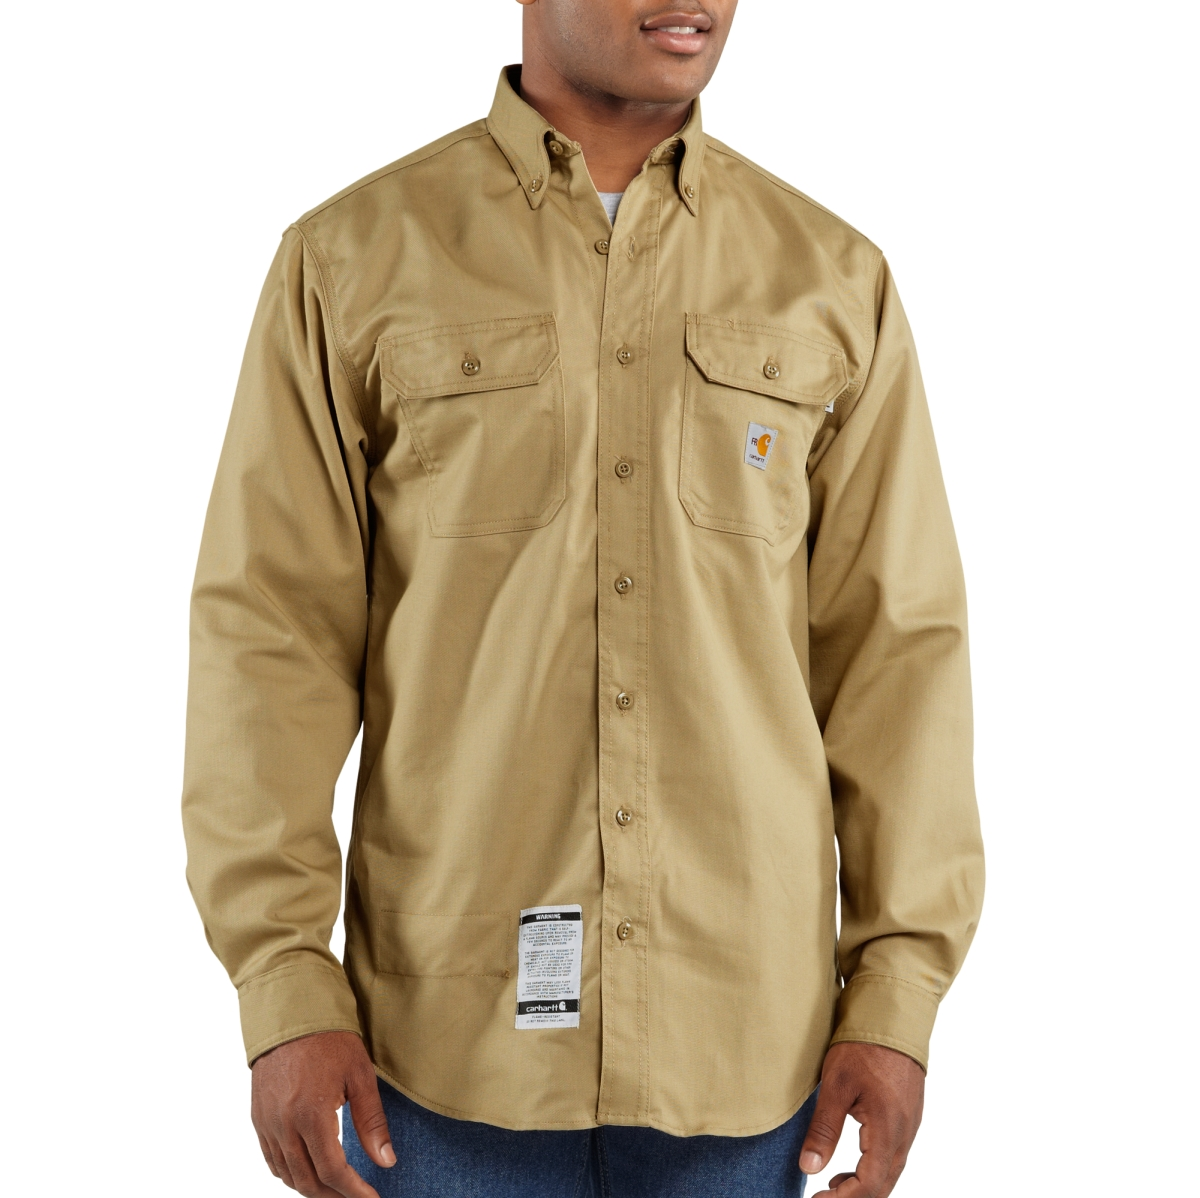 FRS160 Mens Flame-Resistant Classic Twill Shirt